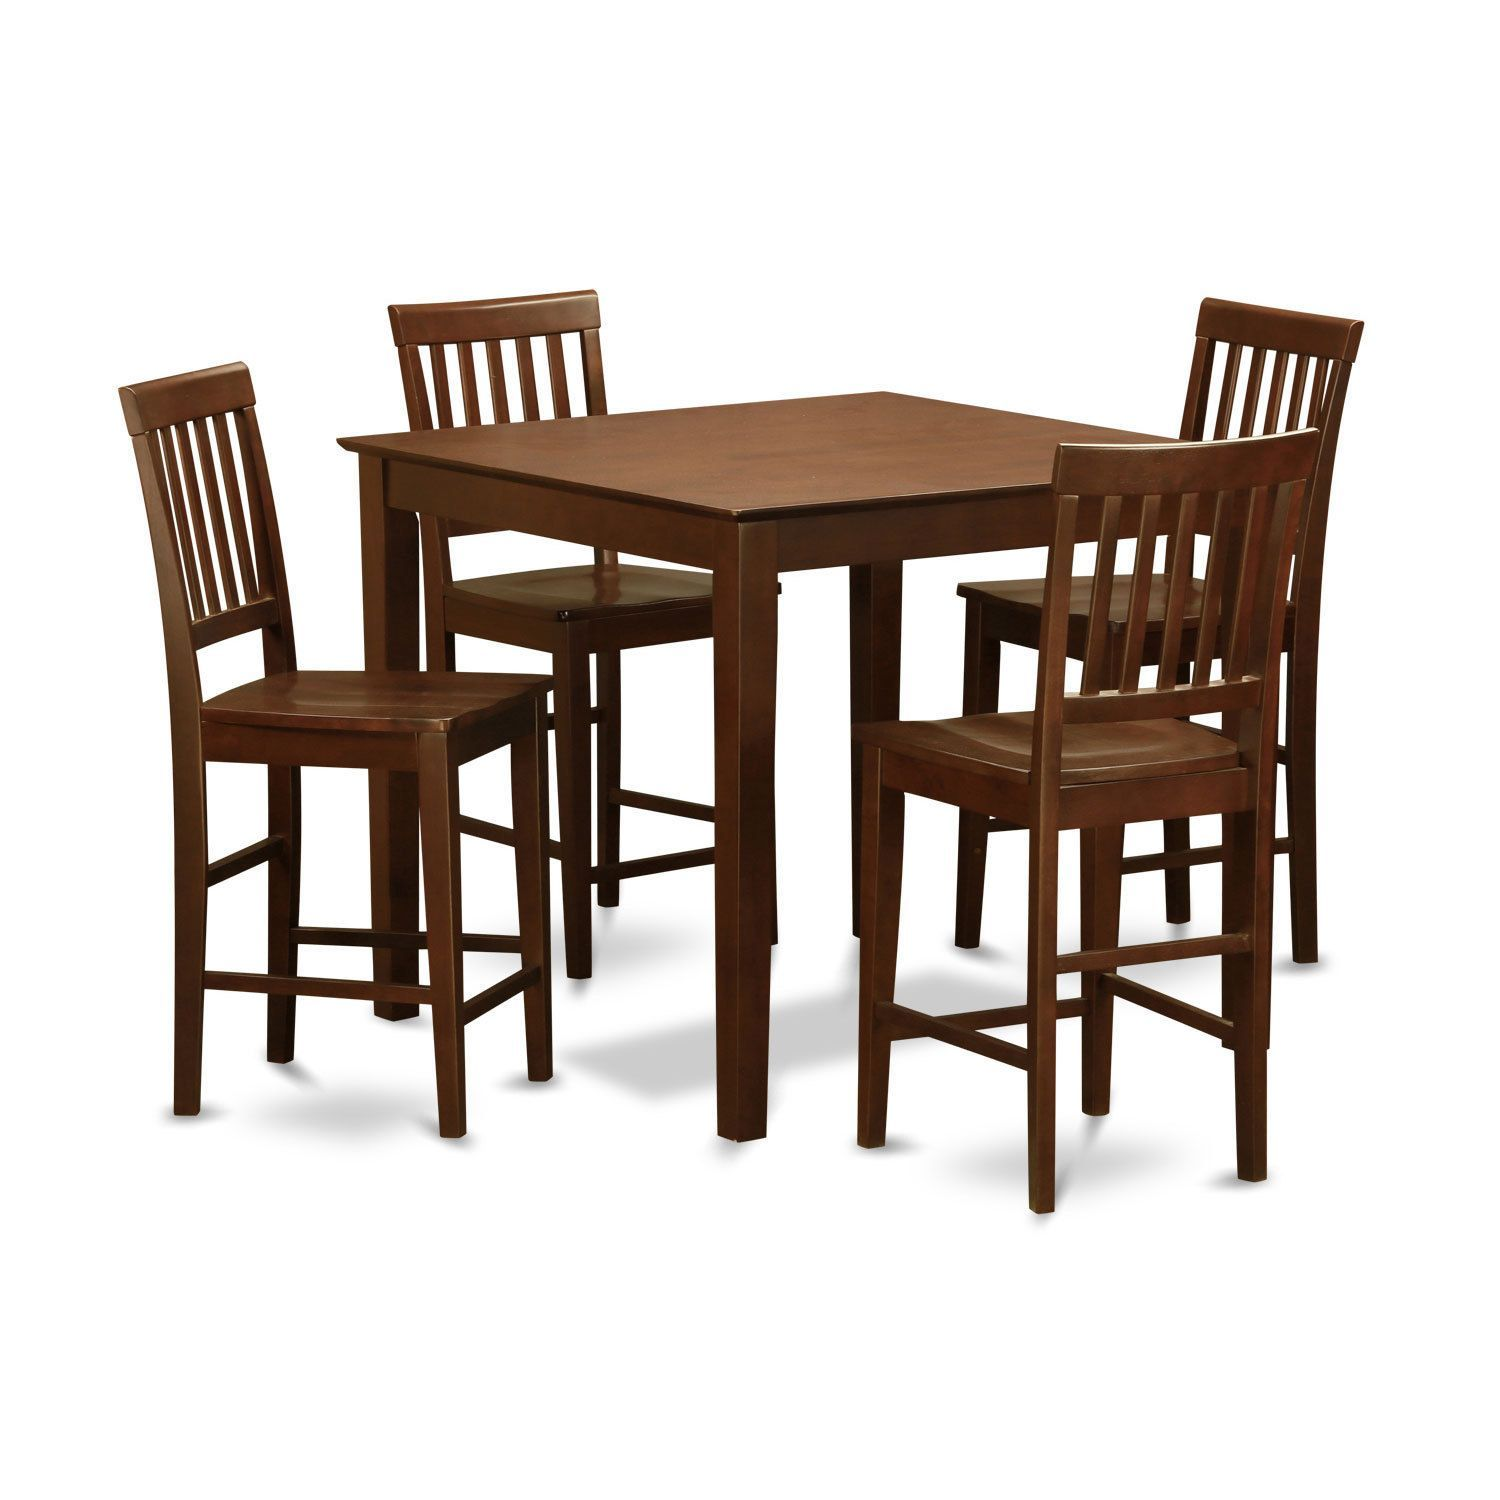 3-piece Counter Height Table Set-Gathering Table Set and 2 Kitchen Counter Chairs  sc 1 st  Pinterest & 3-piece Counter Height Table Set-Gathering Table Set and 2 Kitchen ...